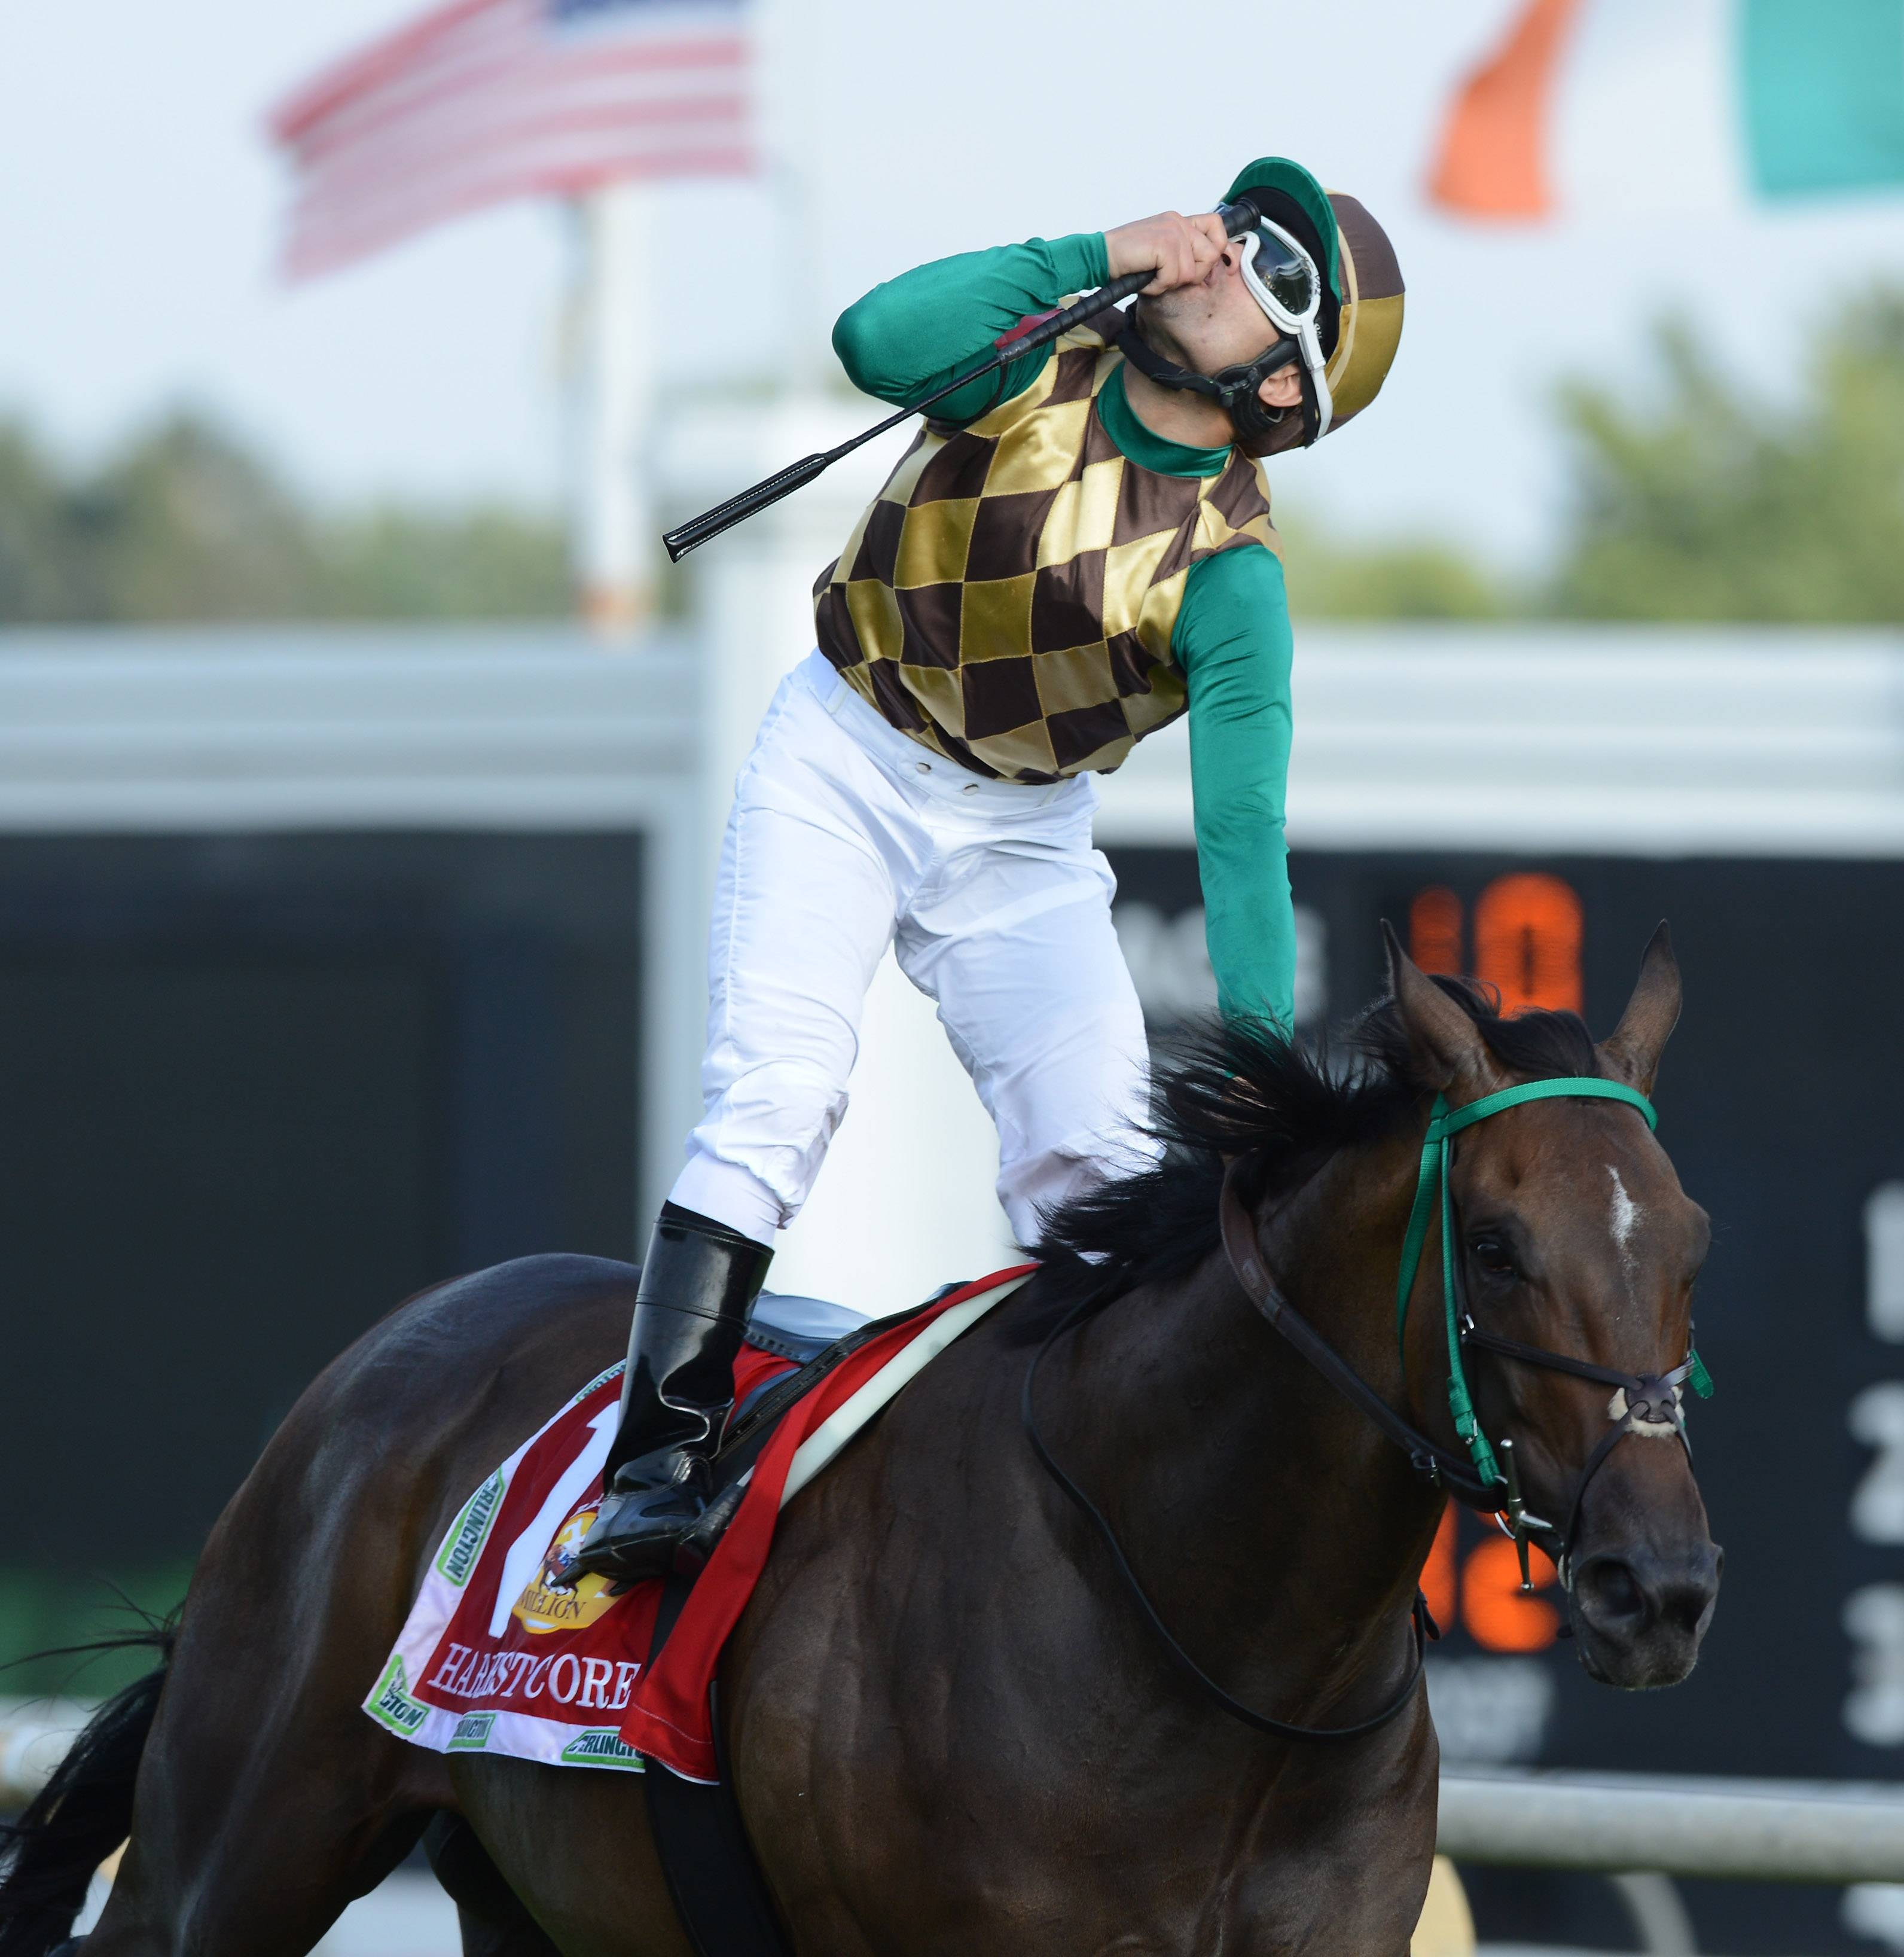 Jockey Eriluis Vaz, aboard Hardest Core, blows a kiss skyward Skyward after winning the Arlington Million.